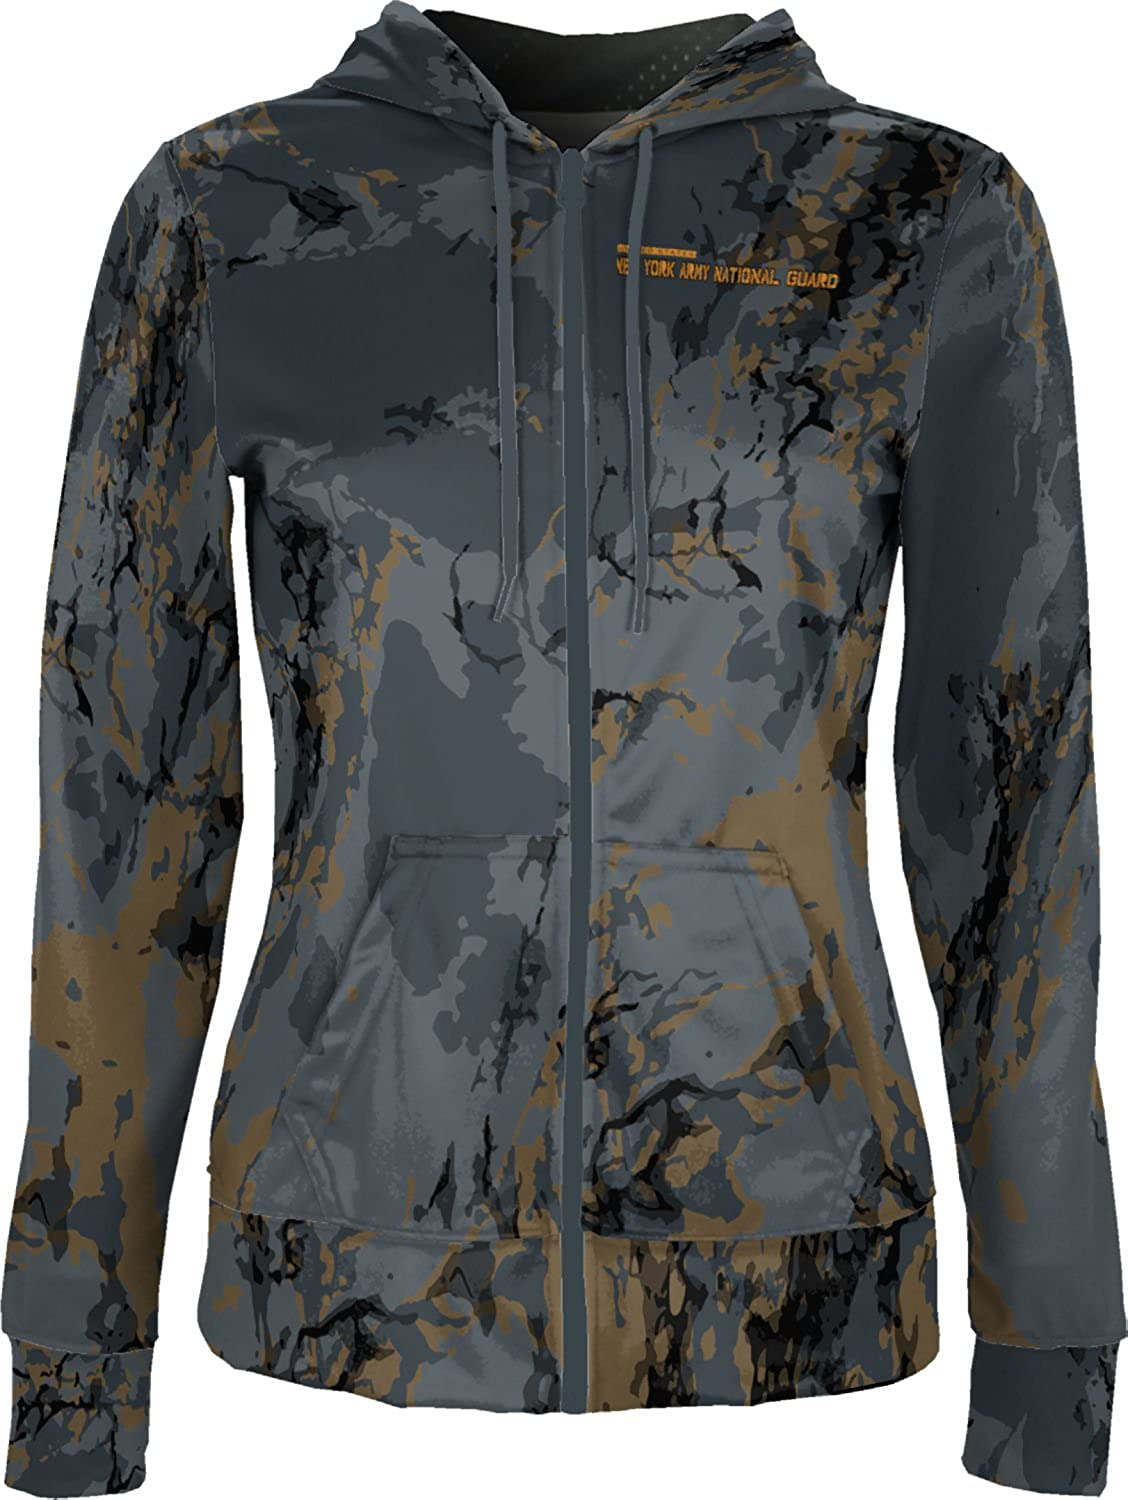 ProSphere Women's New York Army National Guard Military Marble Fullzip Hoodie